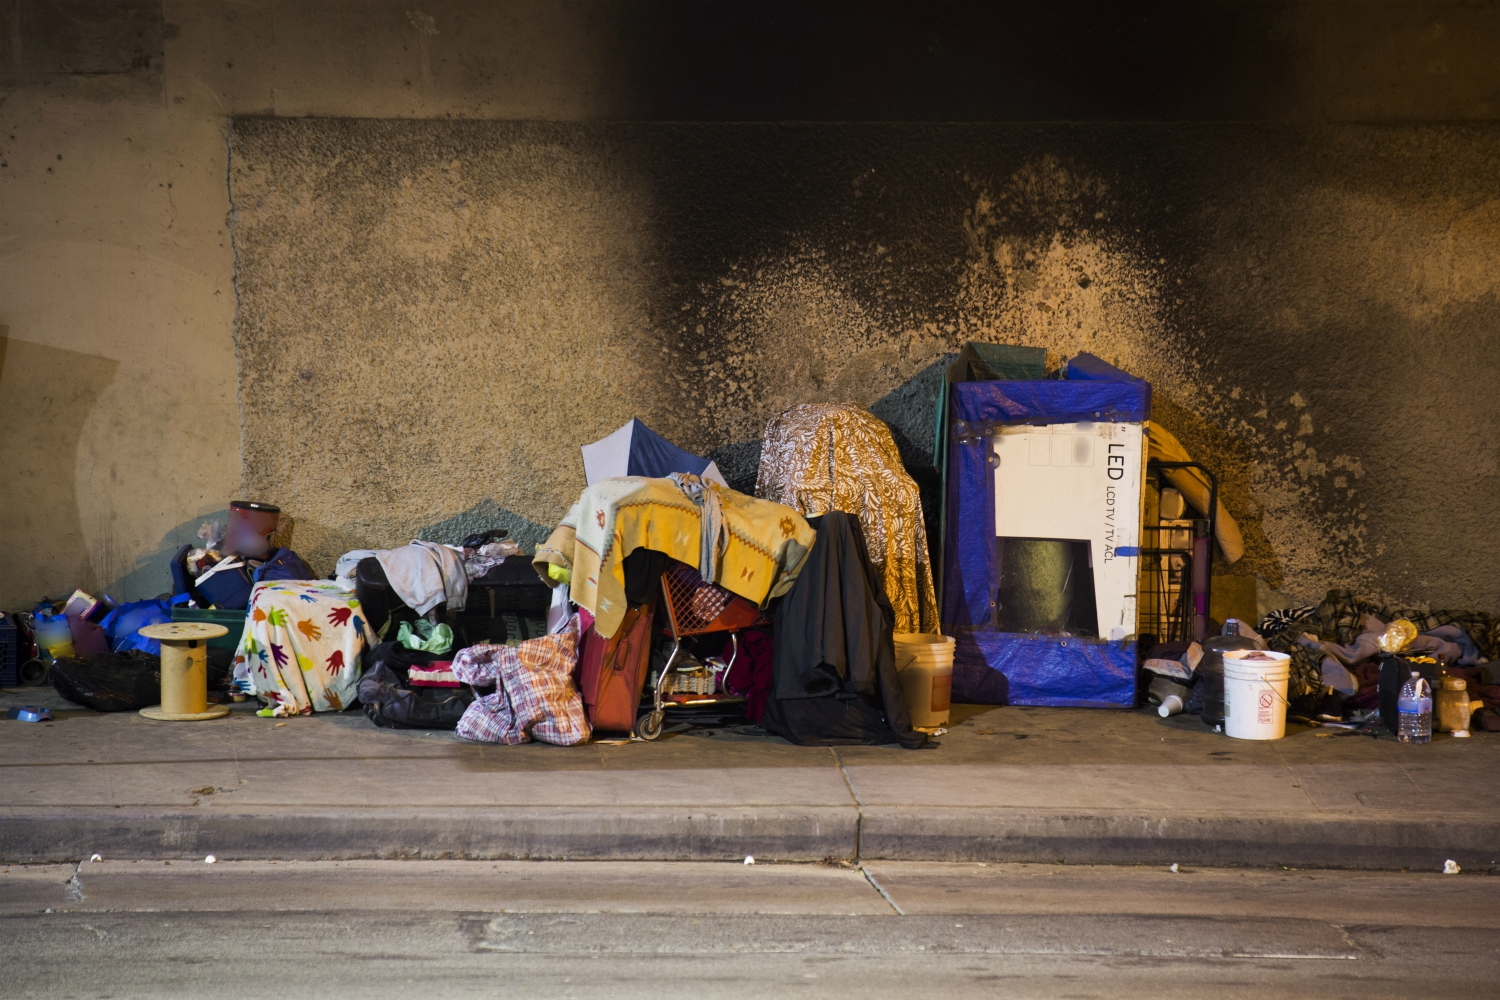 L.A. Councilmembers Urge the Governor to Declare a State of Emergency on Homelessness